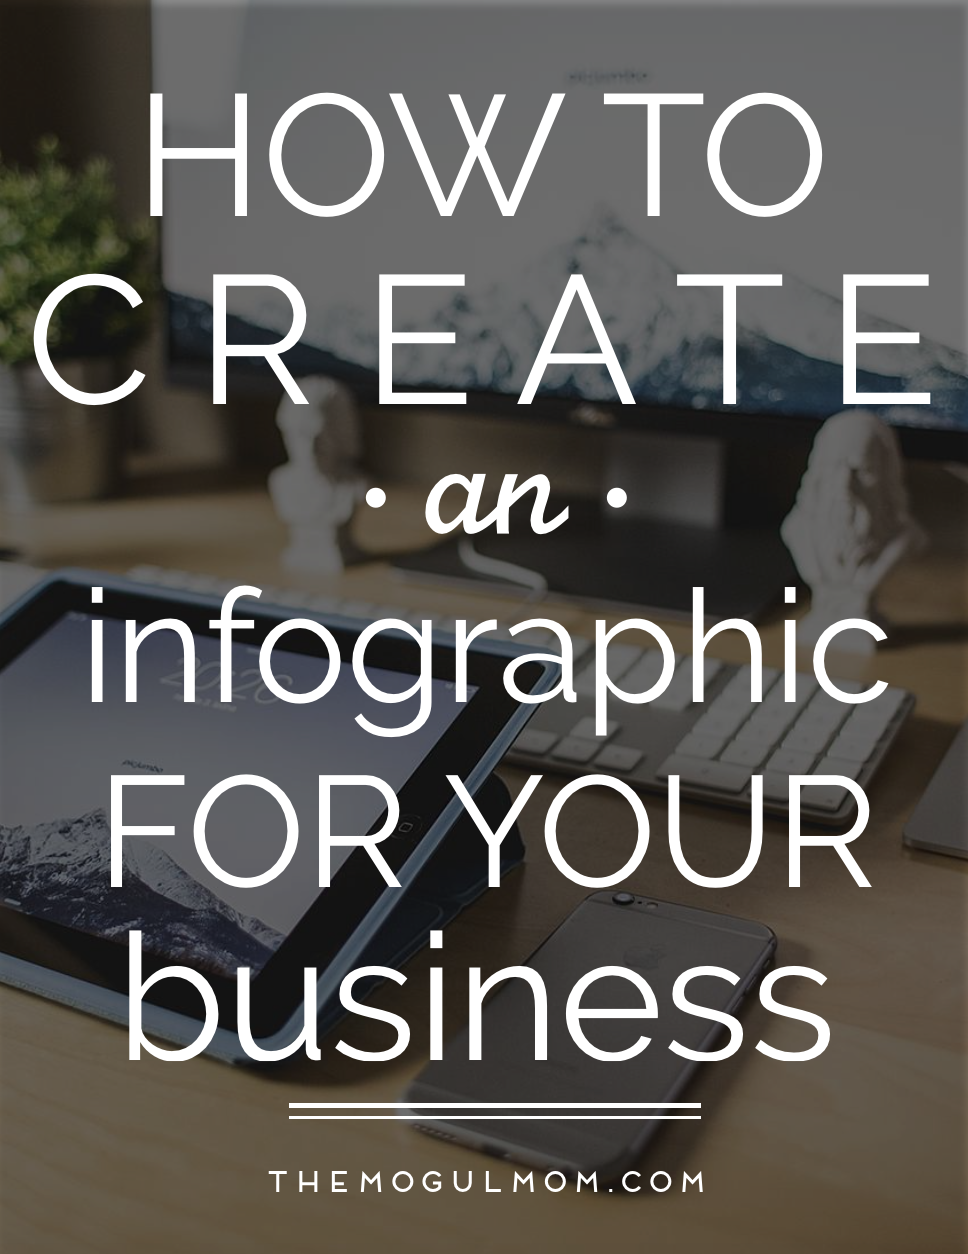 How to Create an Infographic for Your Business